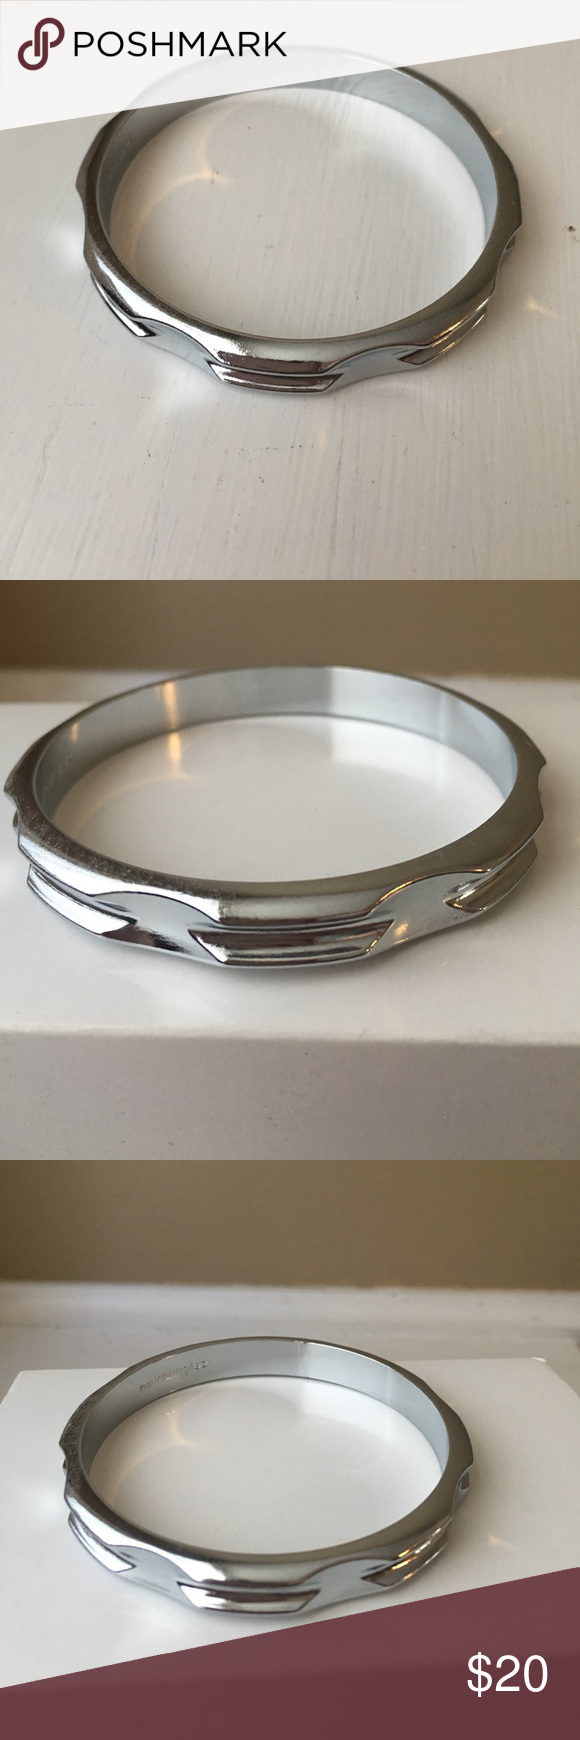 HairBanglez Wrist-Saver Hair tie Bracelet Bought on GROMMET, when the concept was Brand-New! Never Worn. Does feel nice and sturdy on wrist. Saves your wrist from restricting Hair Ties! Stainless Steel- meant for sensitive skin friendly! Jewelry Bracelets